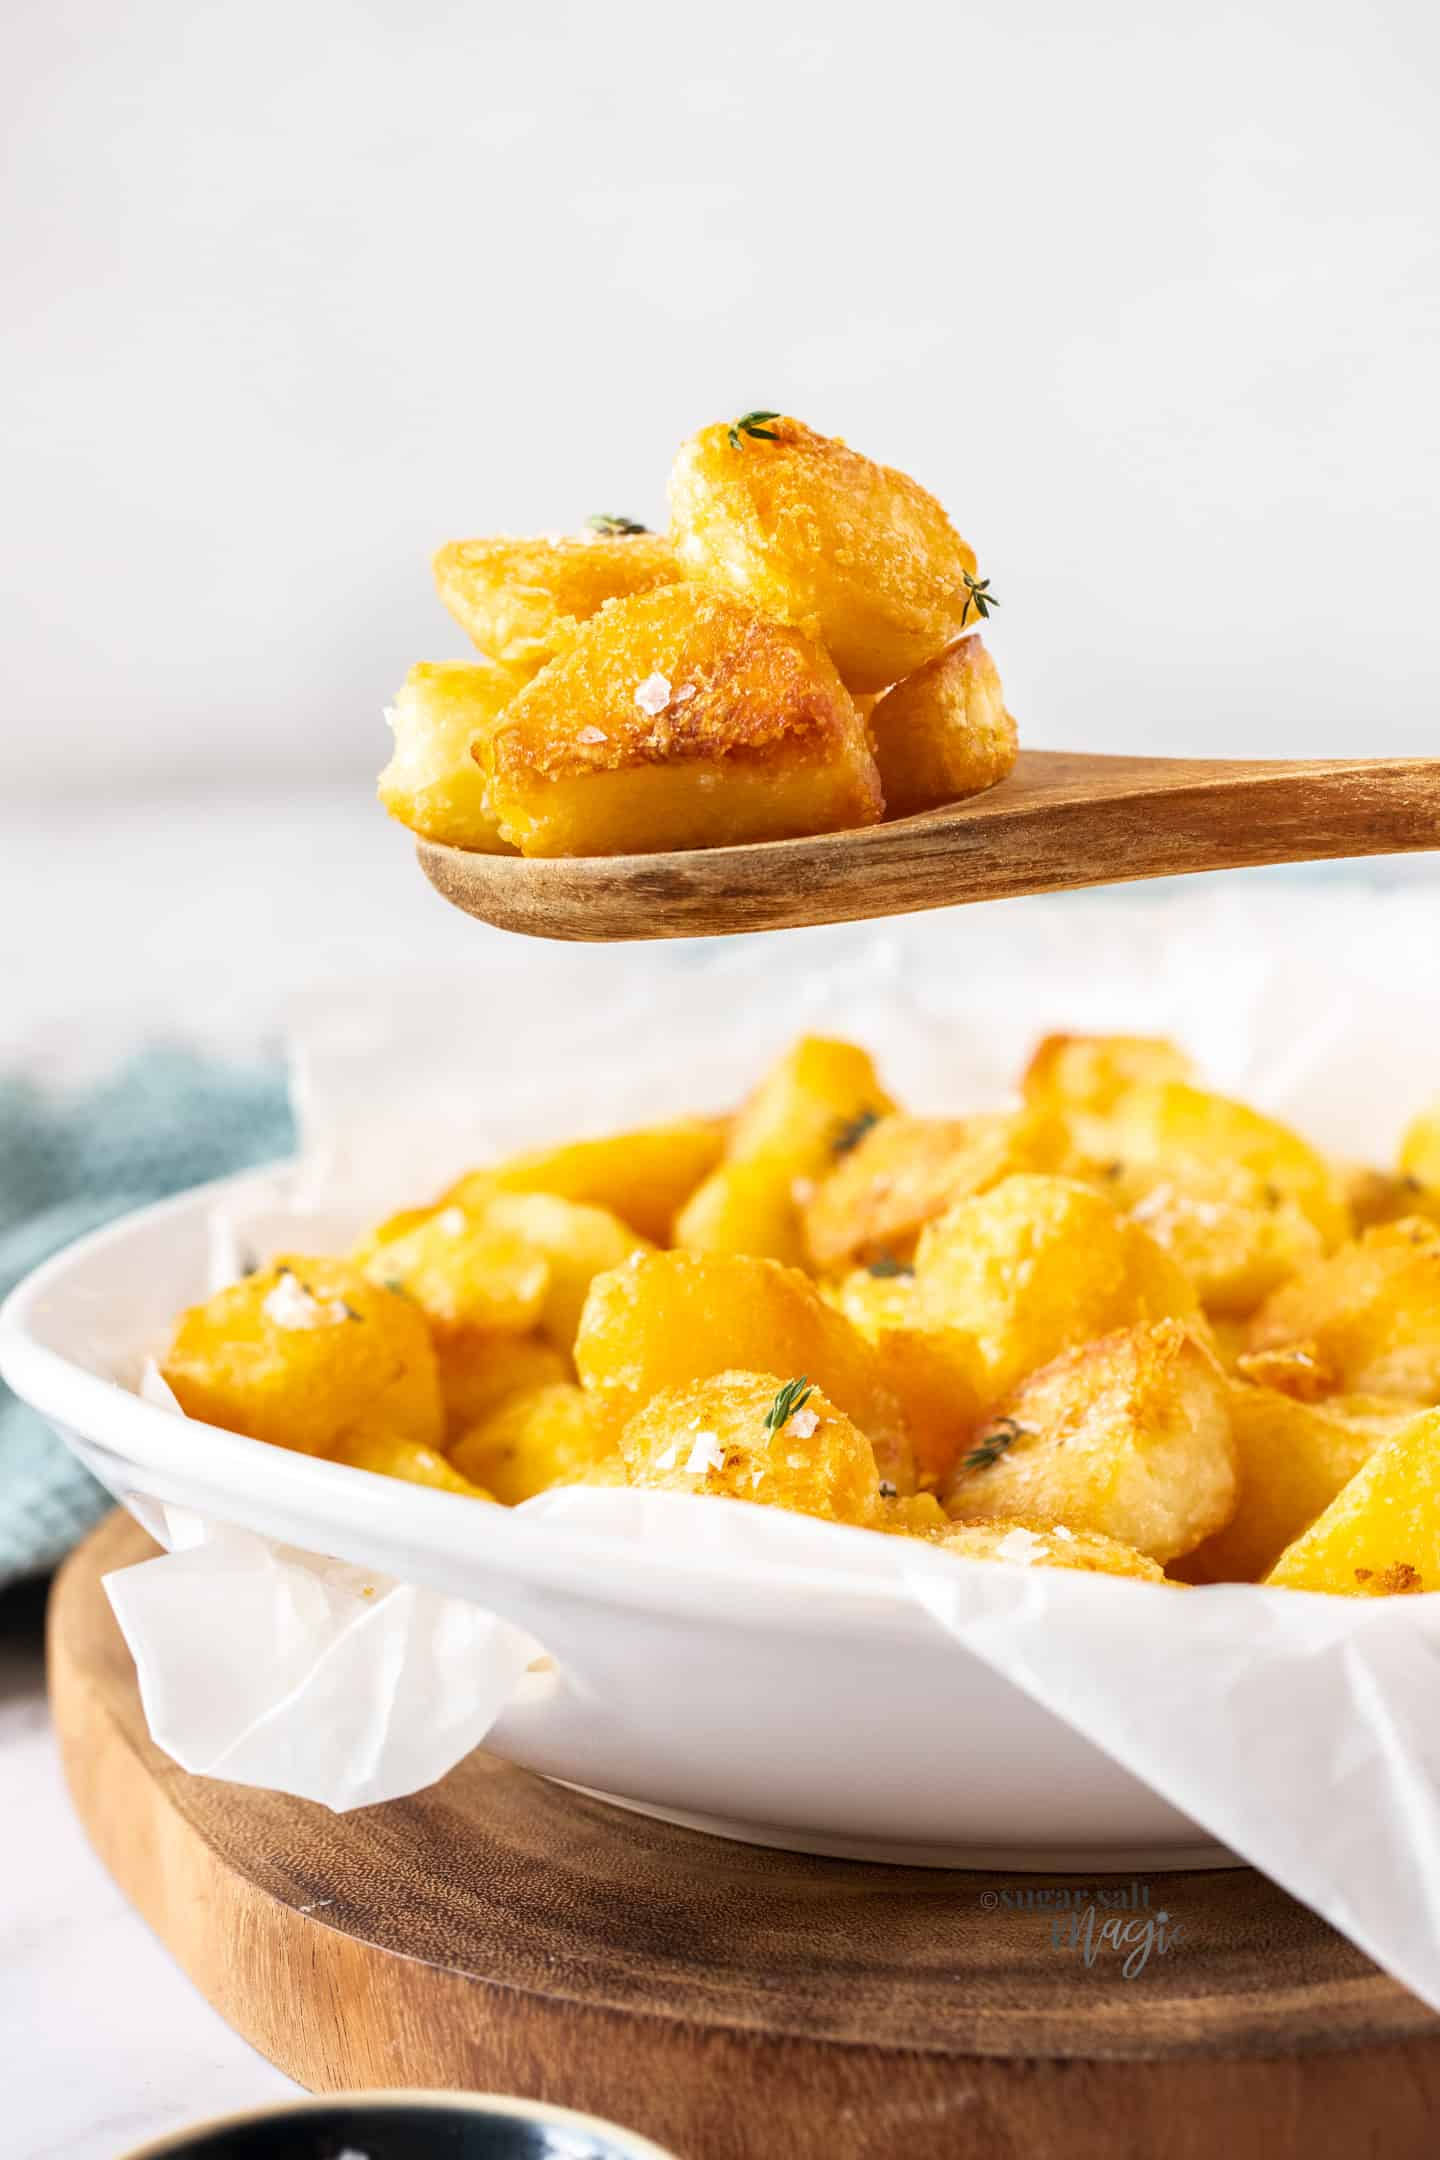 Roast potatoes on a wooden spoon held above a bowl of potatoes.